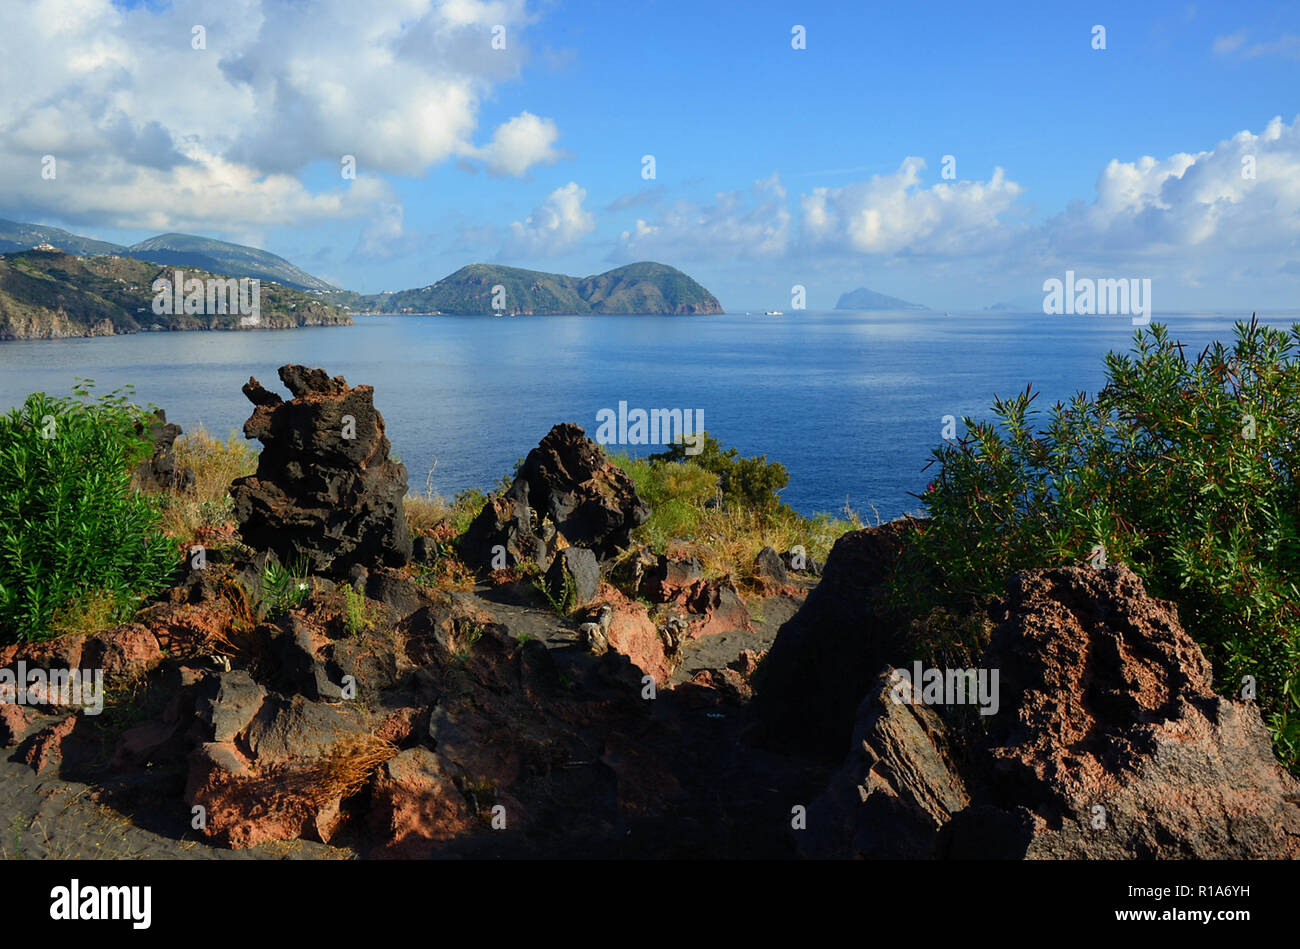 Aeolian Islands, Sicily, Italy. Island of Vulcano, the Valle dei mostri ( En. Monsters Valley).  The valley is characterized by volcanic rocks with grotesque and frightening figures, where everyone's imagination can identify monsters, wild beasts and disquieting figures. Stock Photo